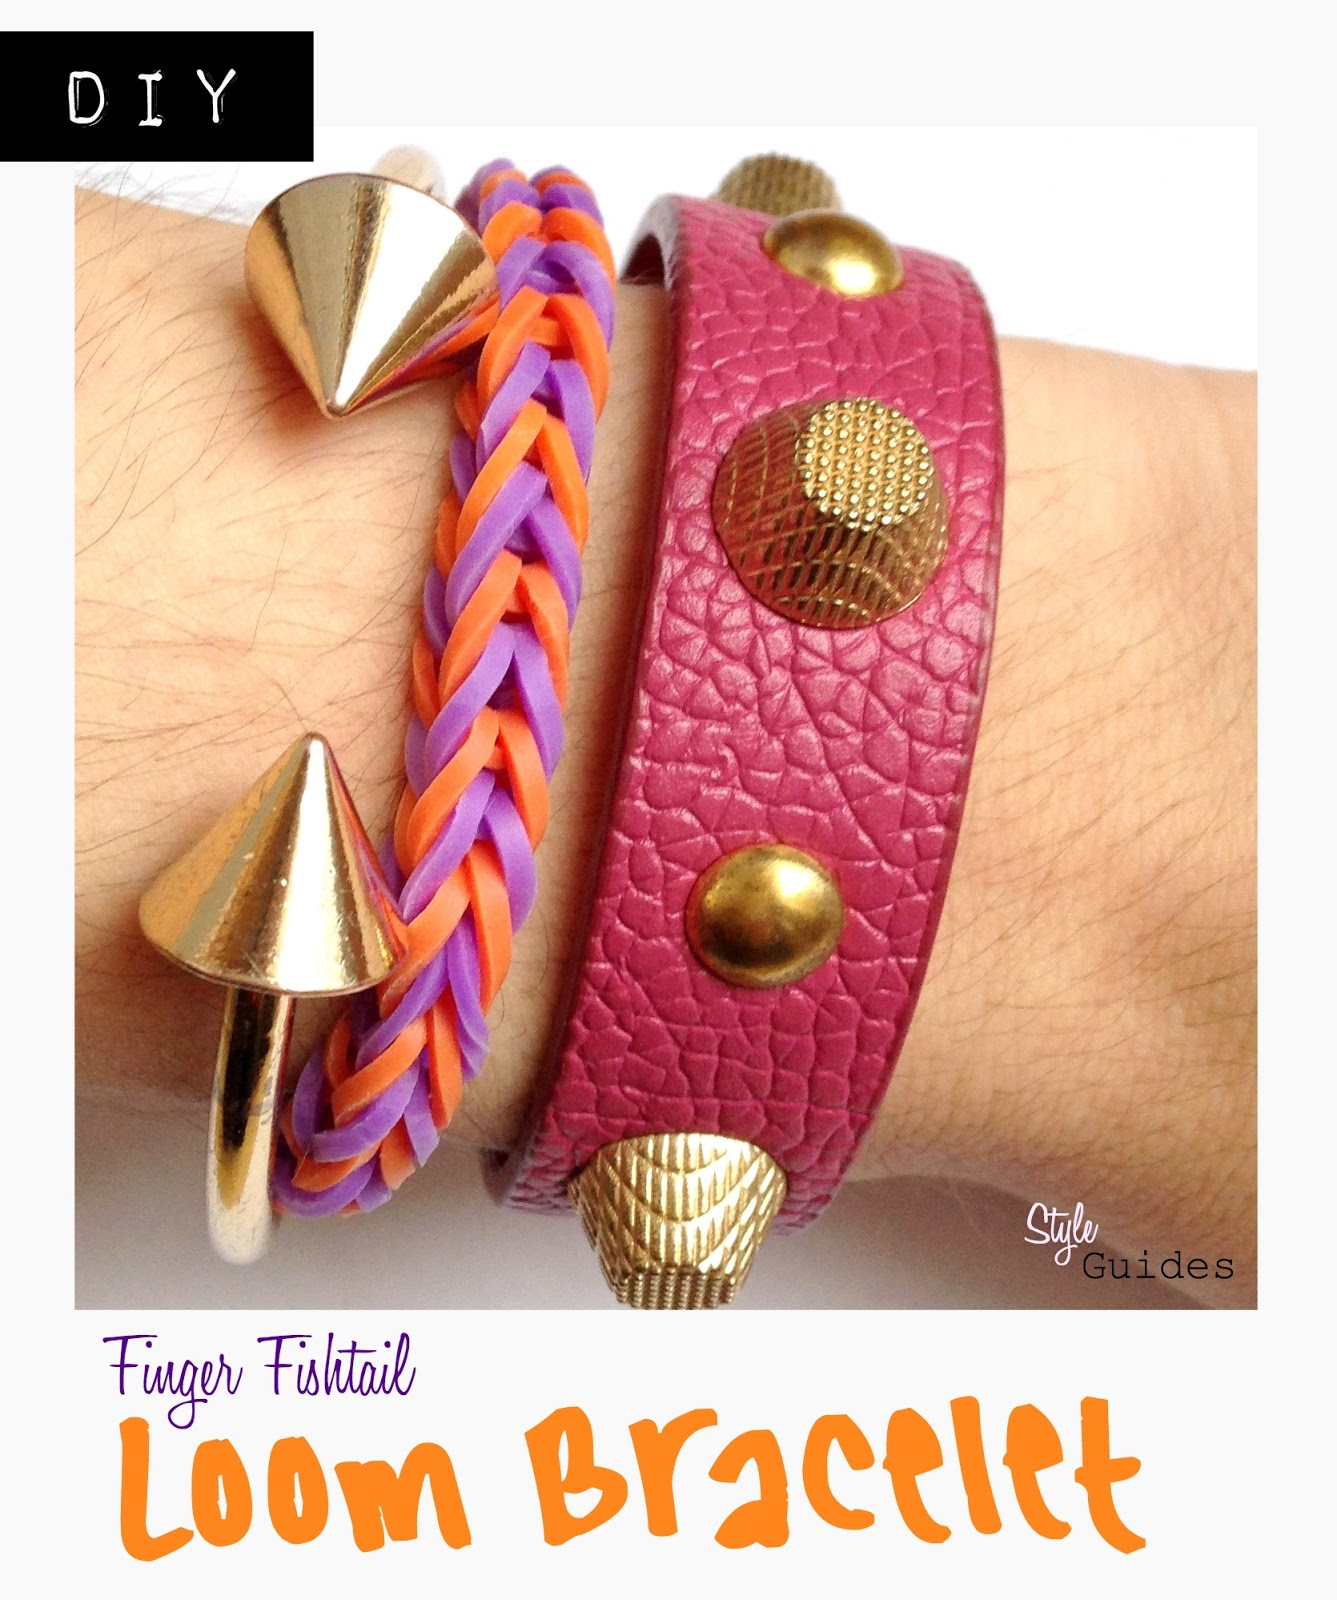 diy loom bracelet fashion